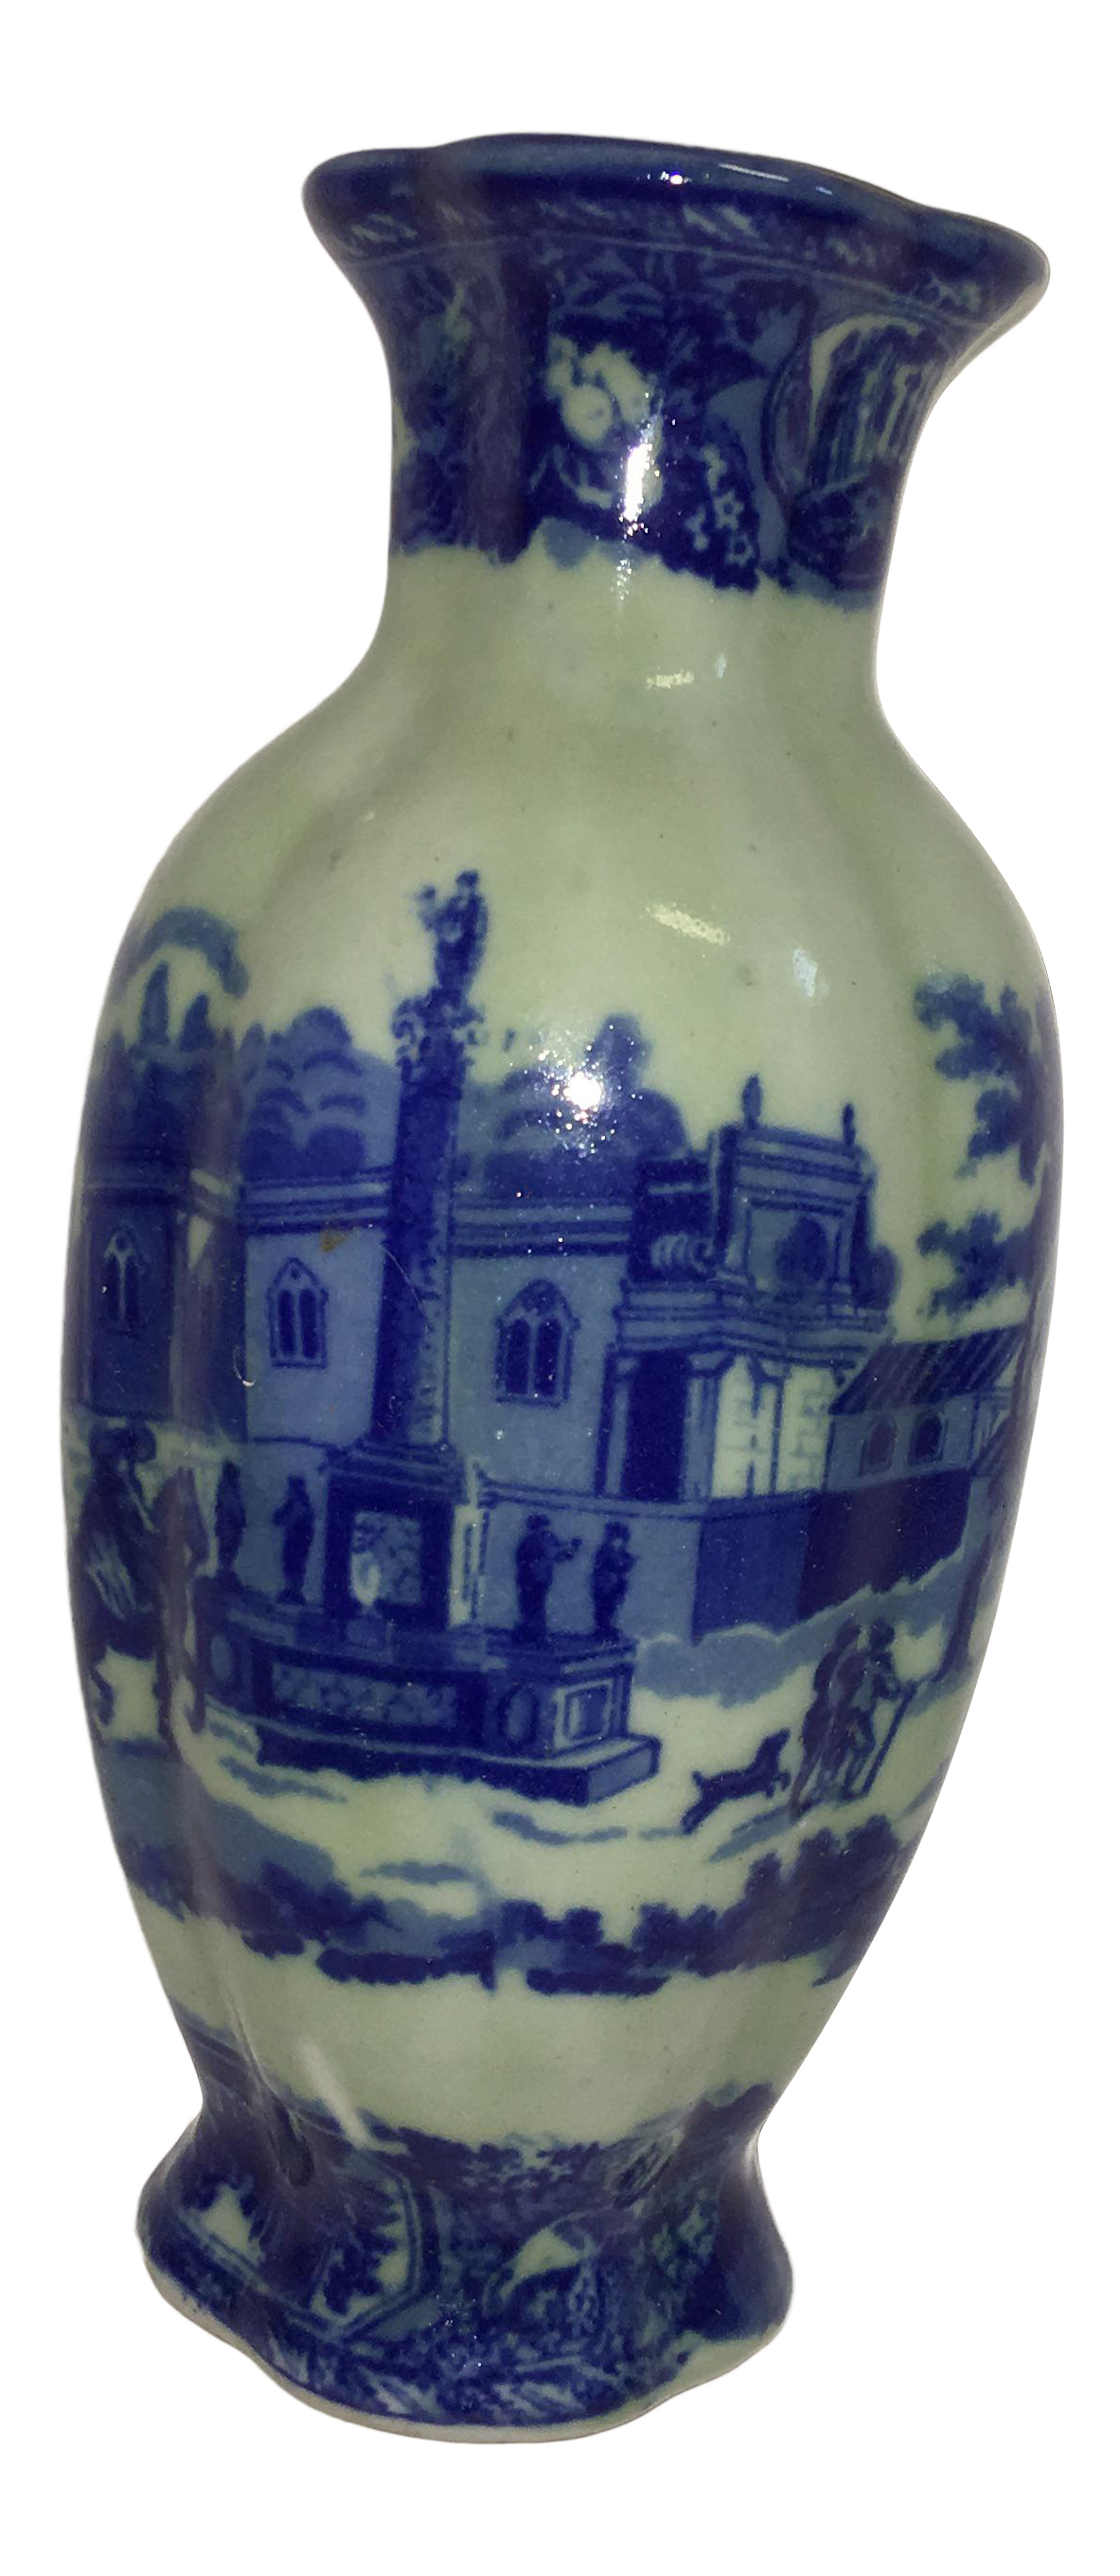 Blue white european scene ceramic wall pocket vase chairish reviewsmspy